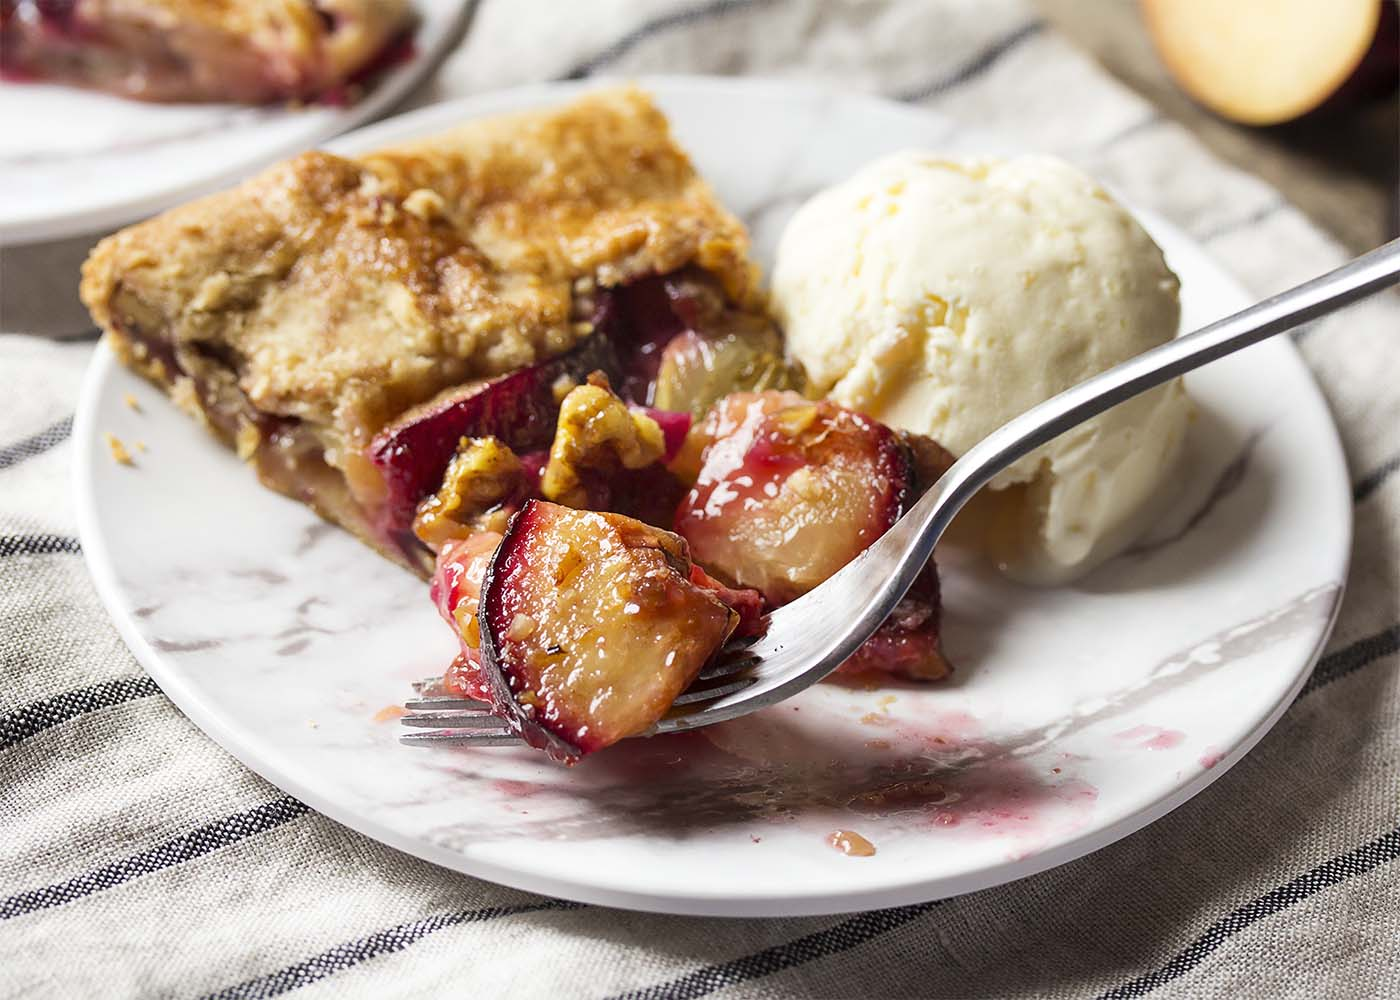 A slice of plum galette on a plate with a scoop of ice cream. A fork cutting a portion off to eat.